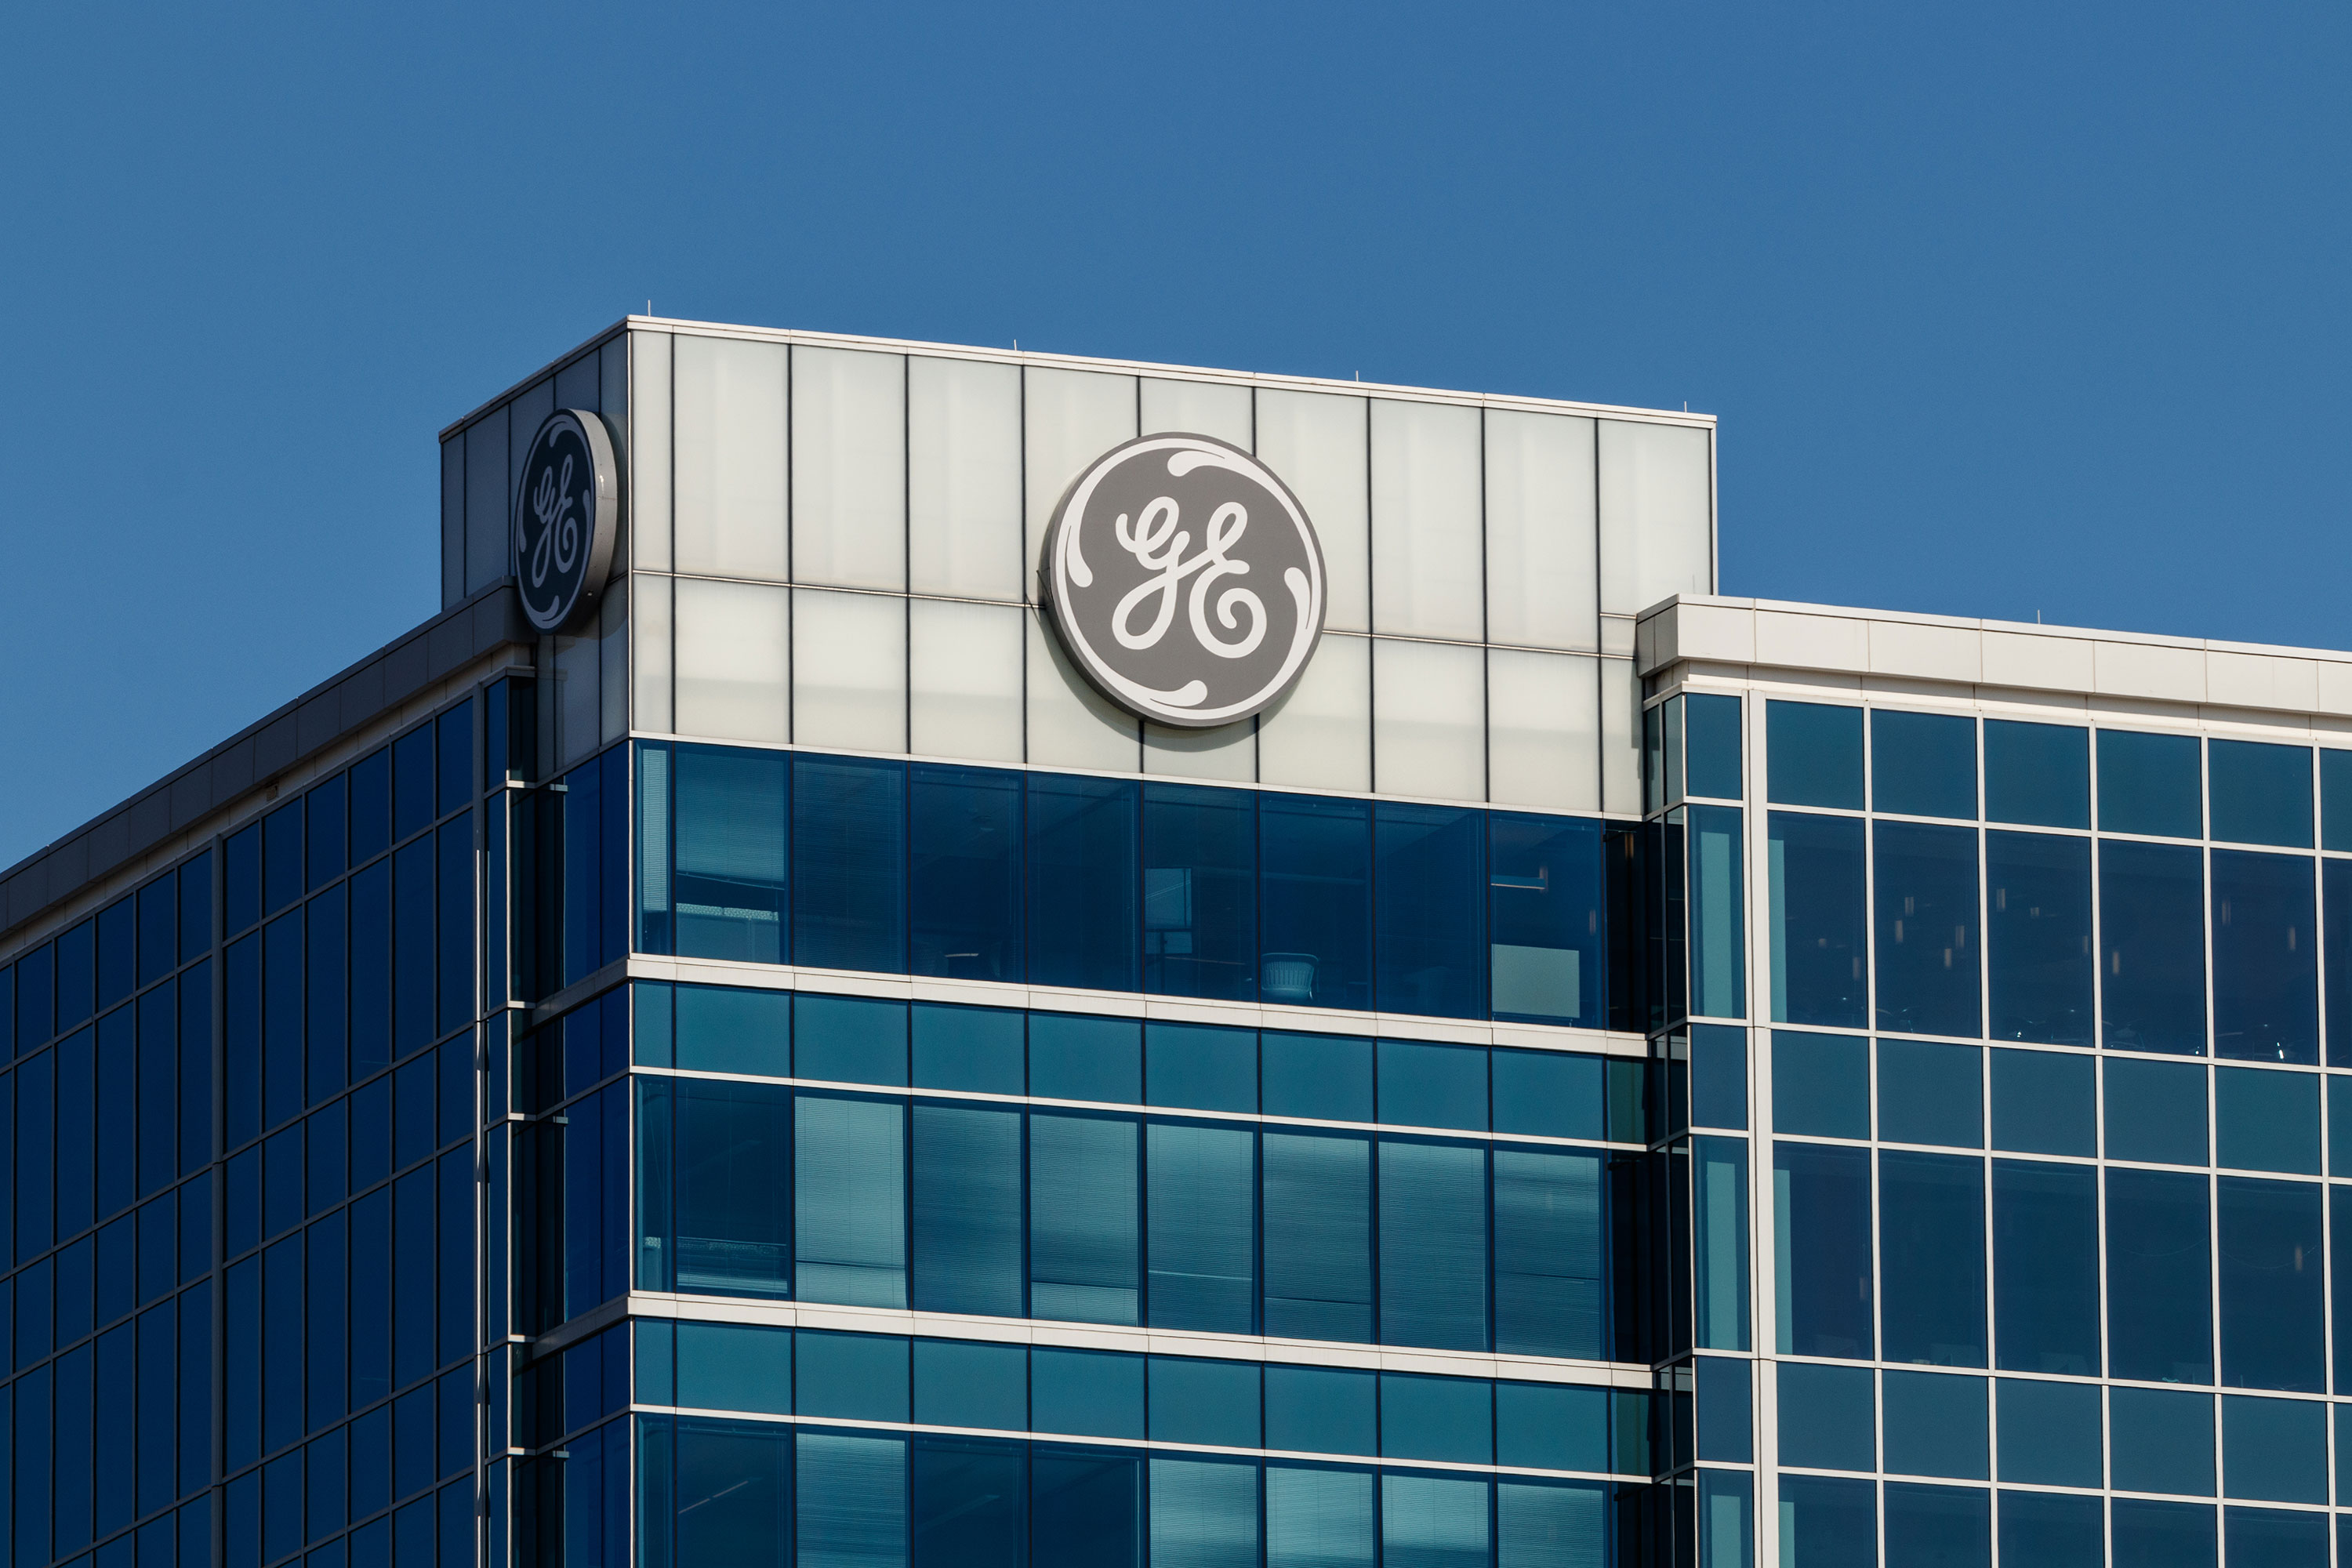 GE is getting out of the coal power business